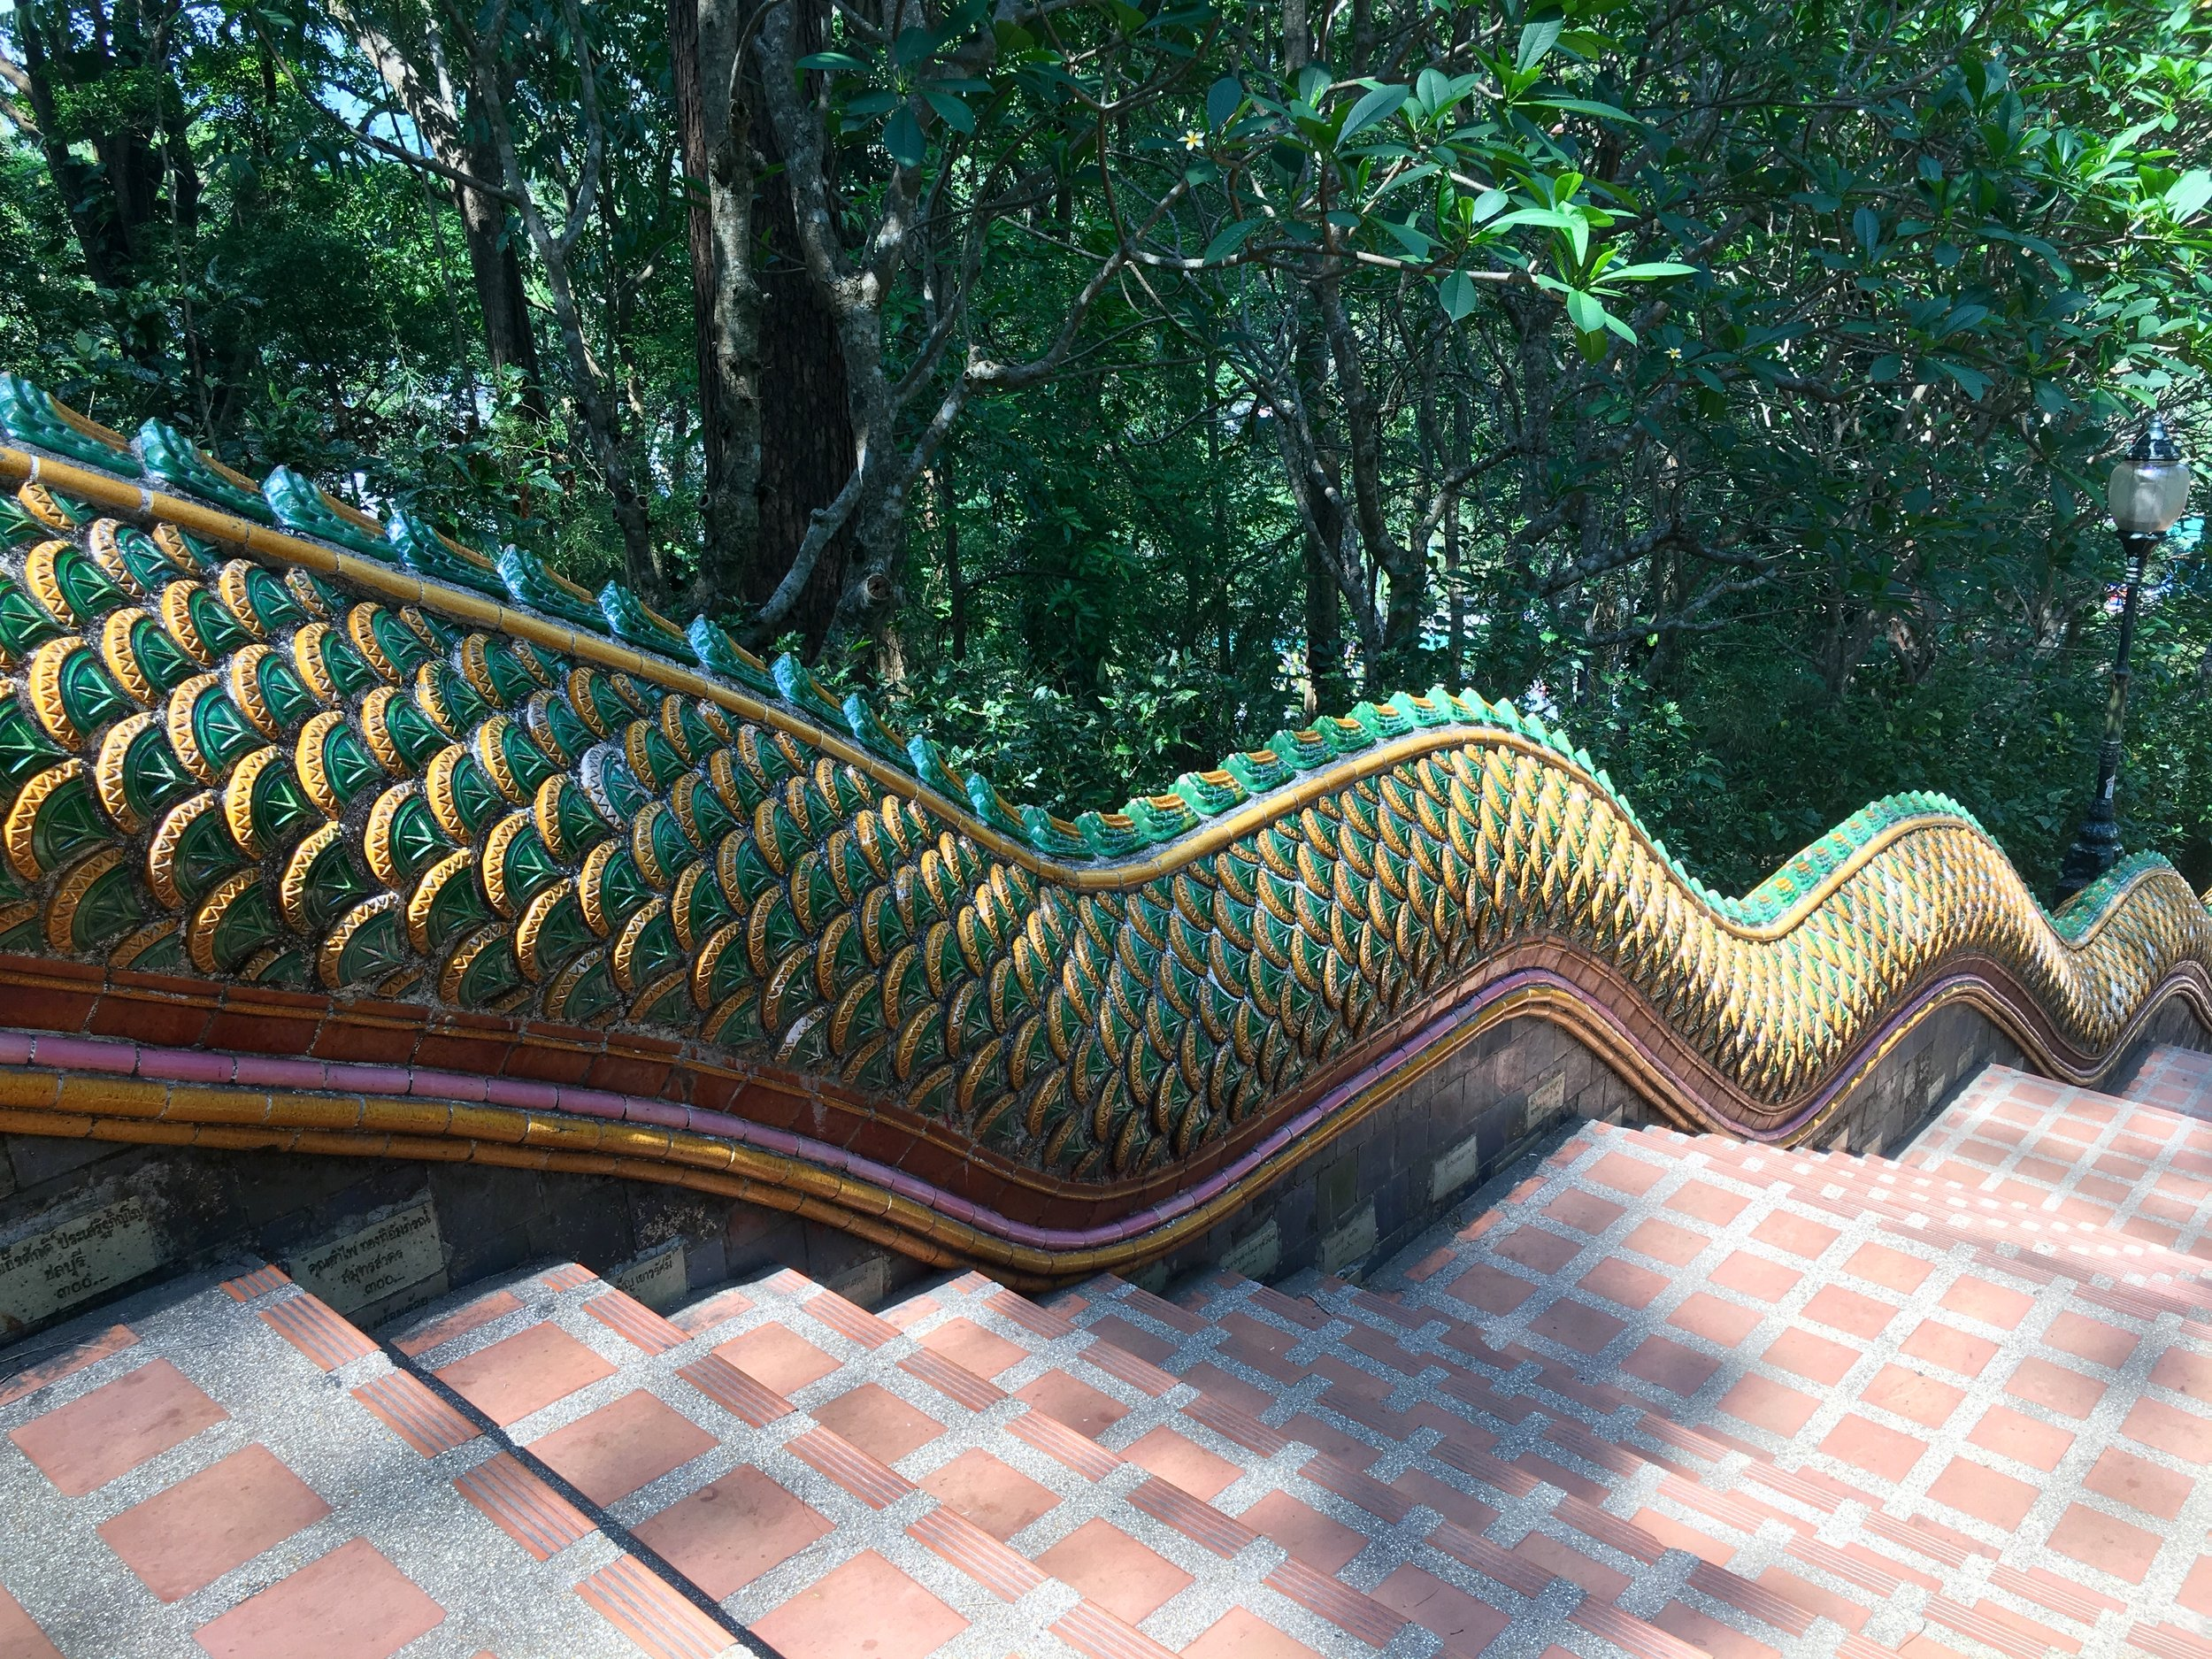 The lengthy staircase at Doi Suthep has railings that slither upwards in the shape of snakelike nagas